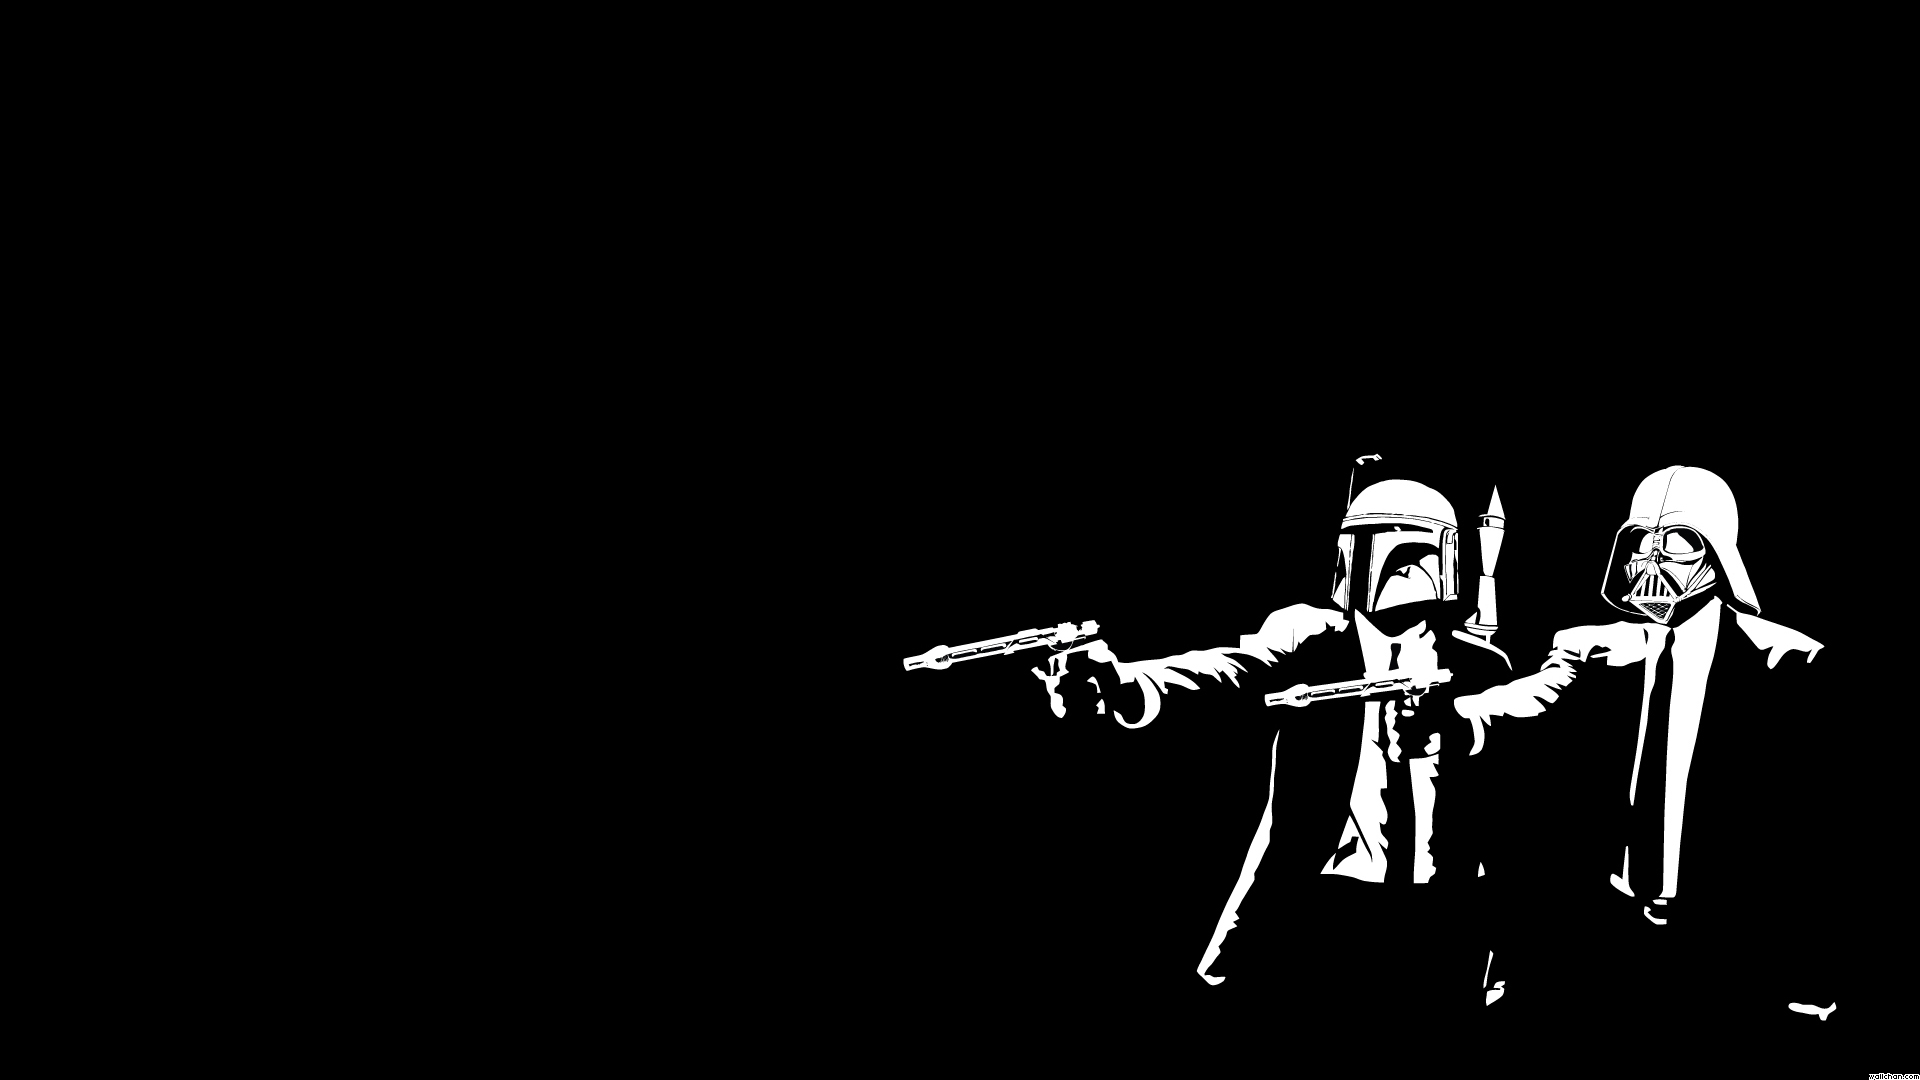 star-wars-wallpaper-Pictures